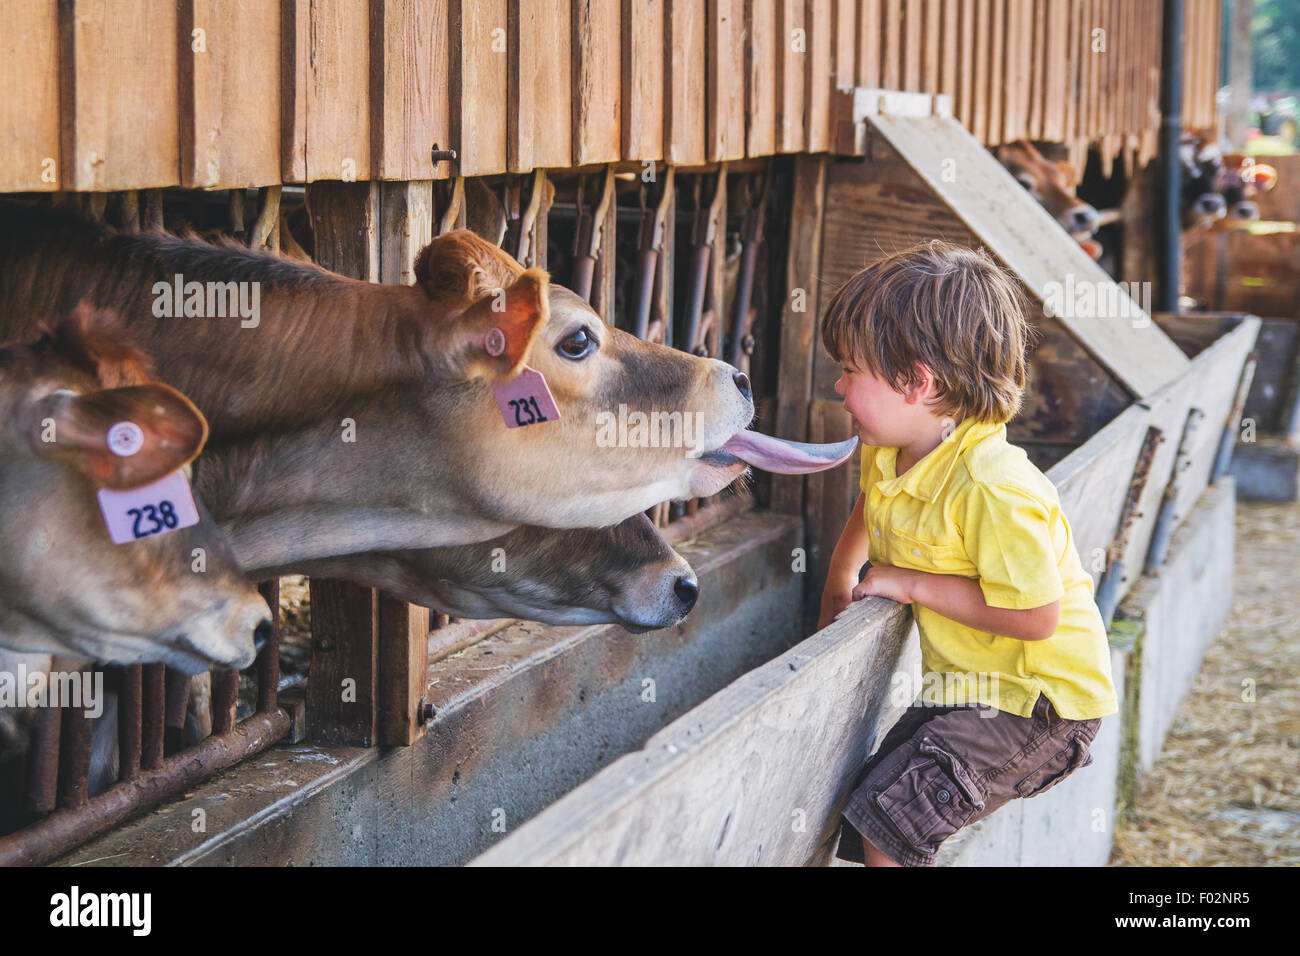 Boy looking at cows in stalls - Stock Image